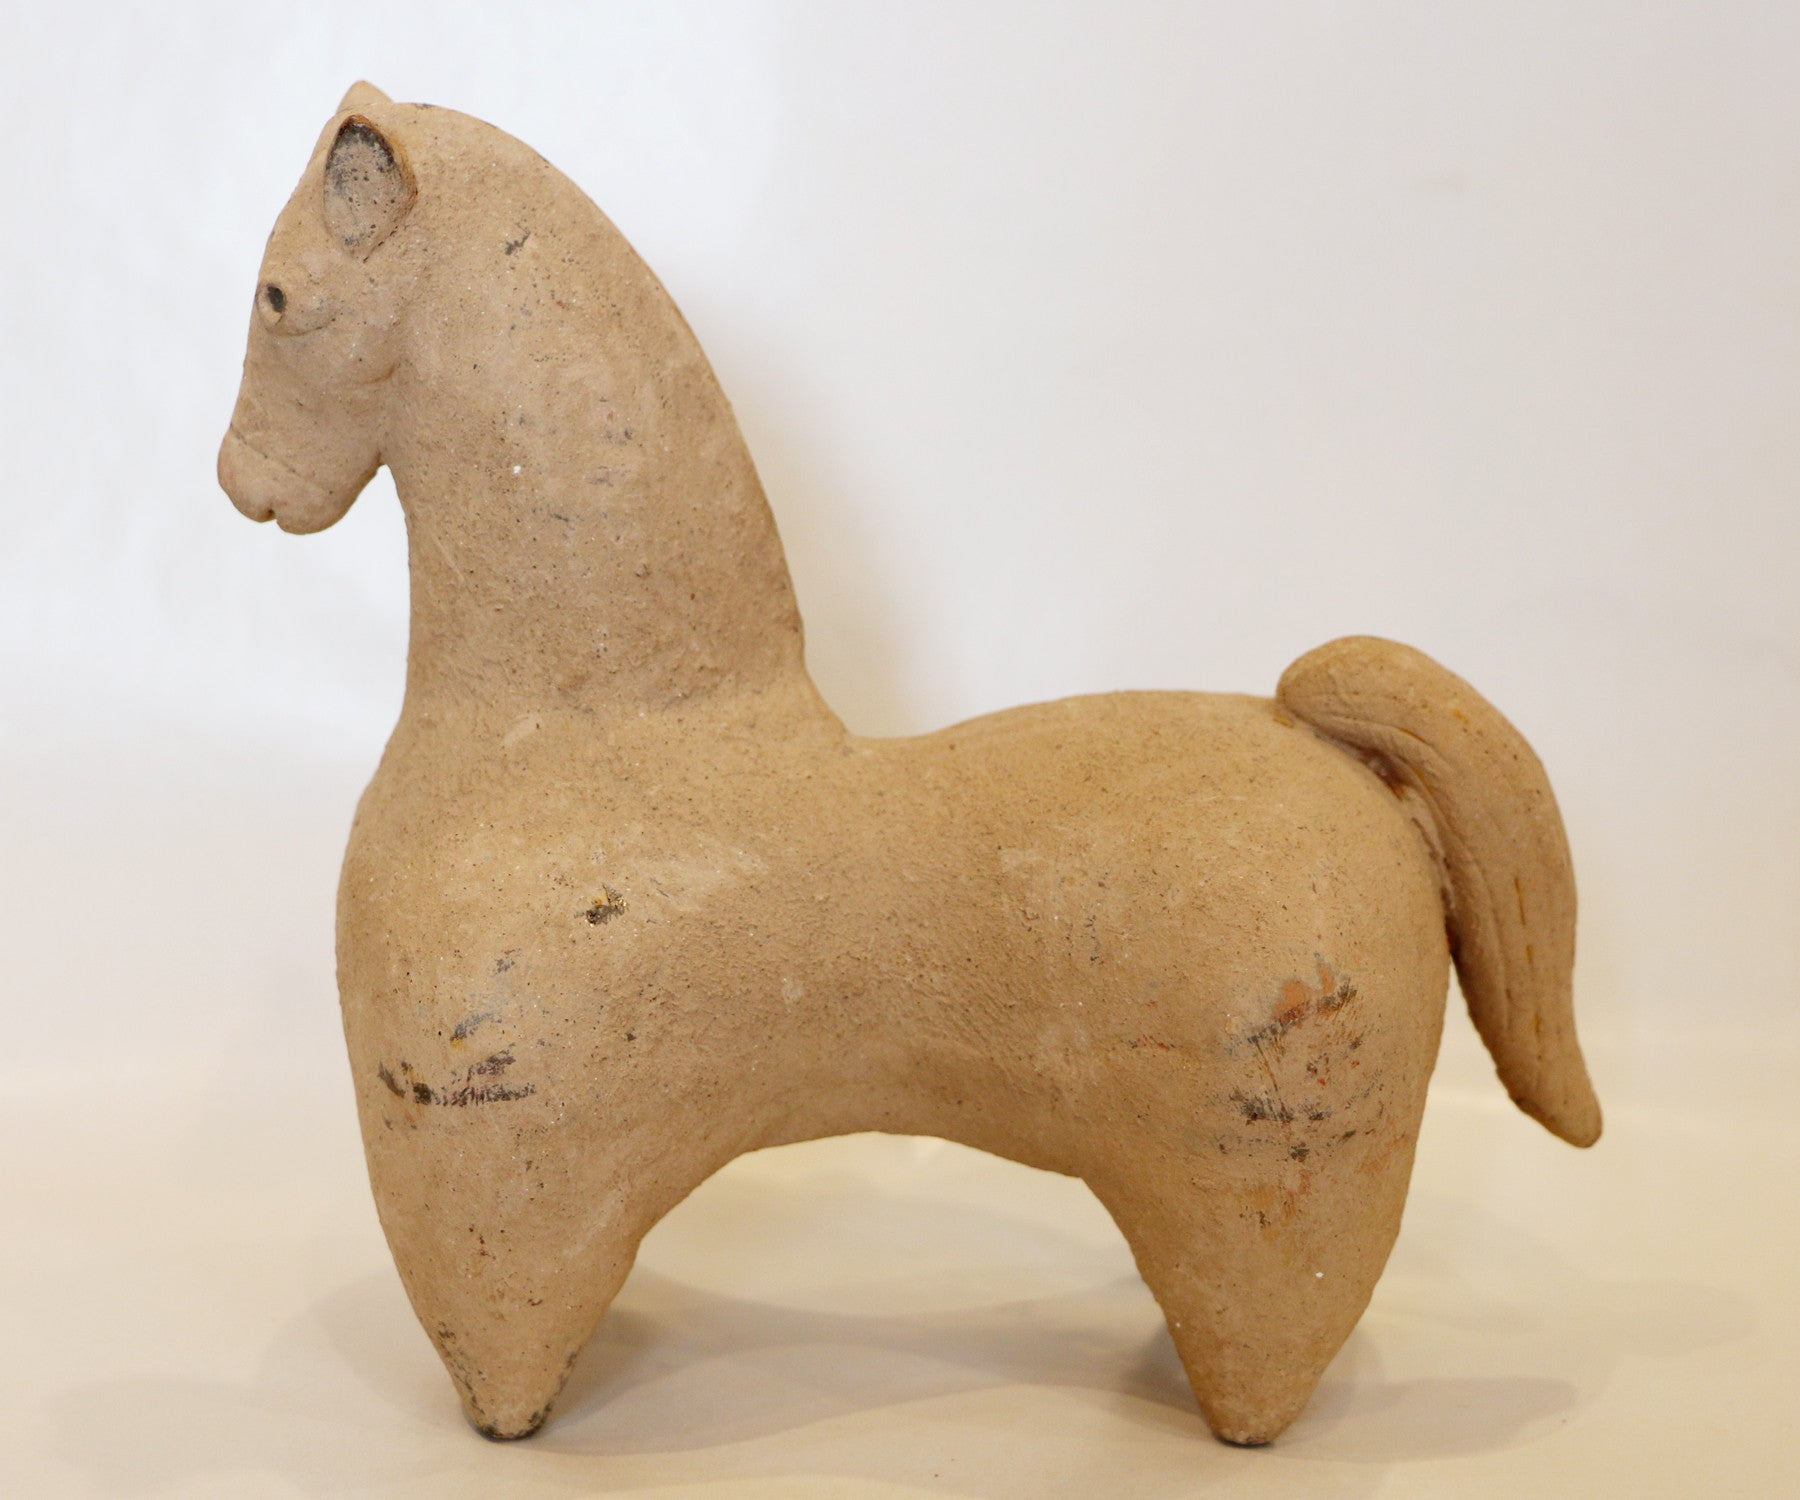 Indus Valley Slip-painted Terracotta Sculpture - Tibet Arts & Healing